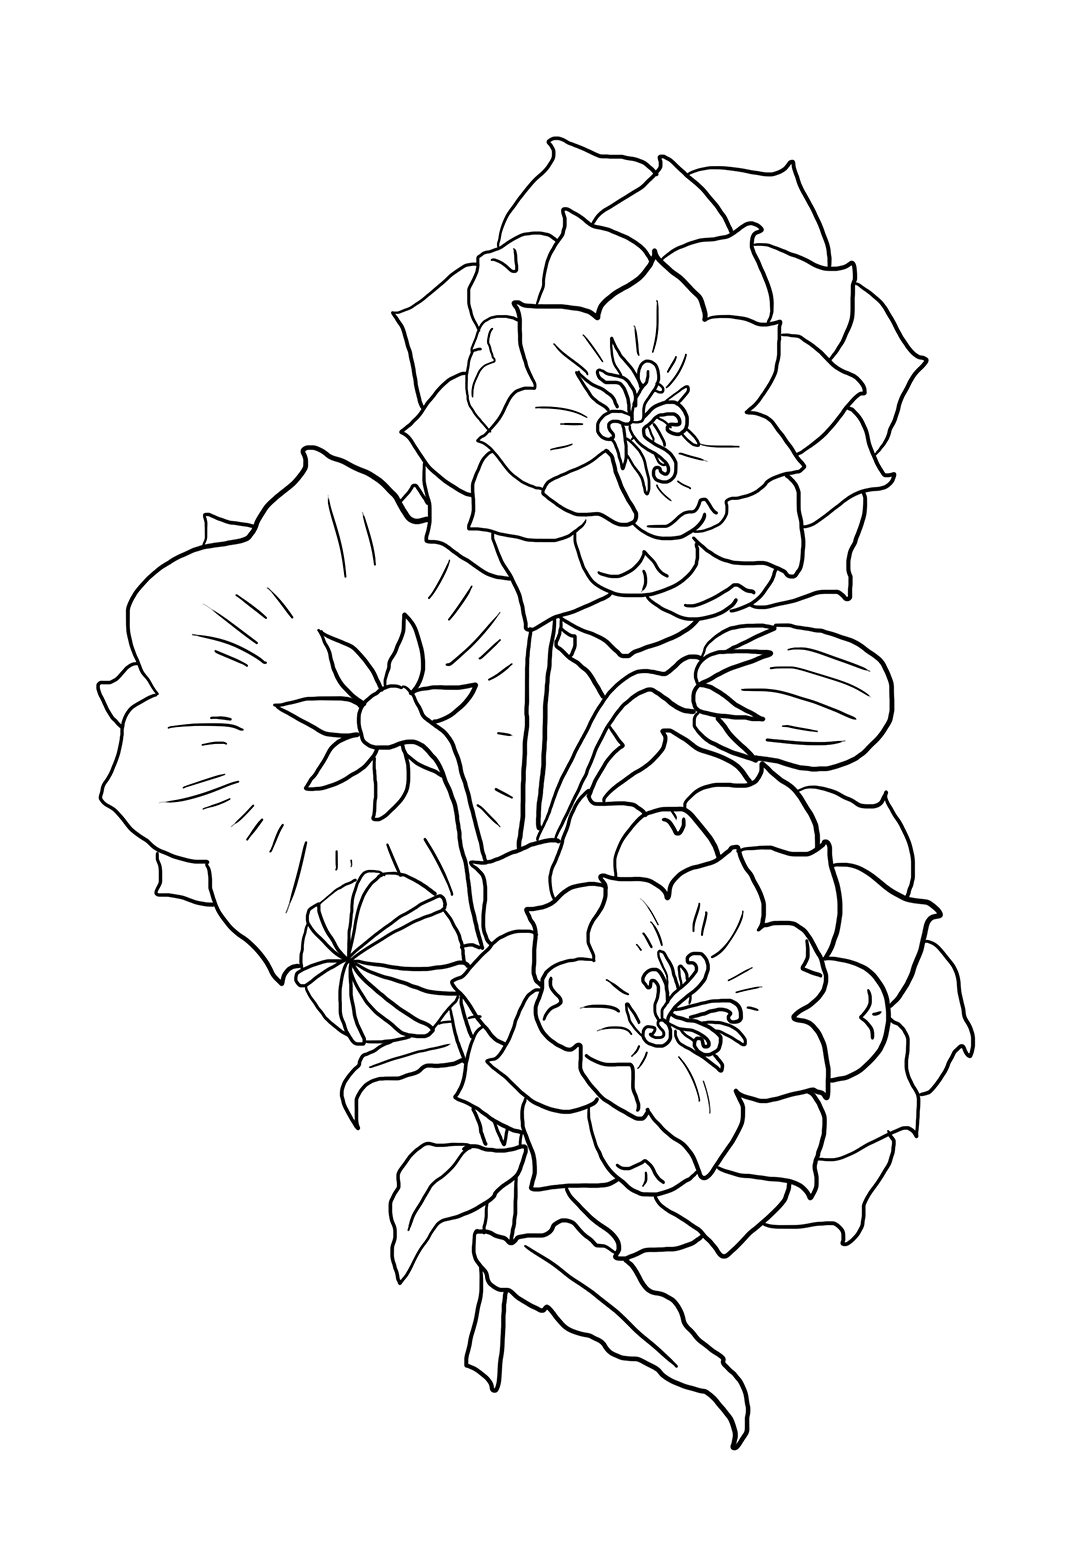 flowers outlines for colouring flower coloring pages flowers colouring for outlines